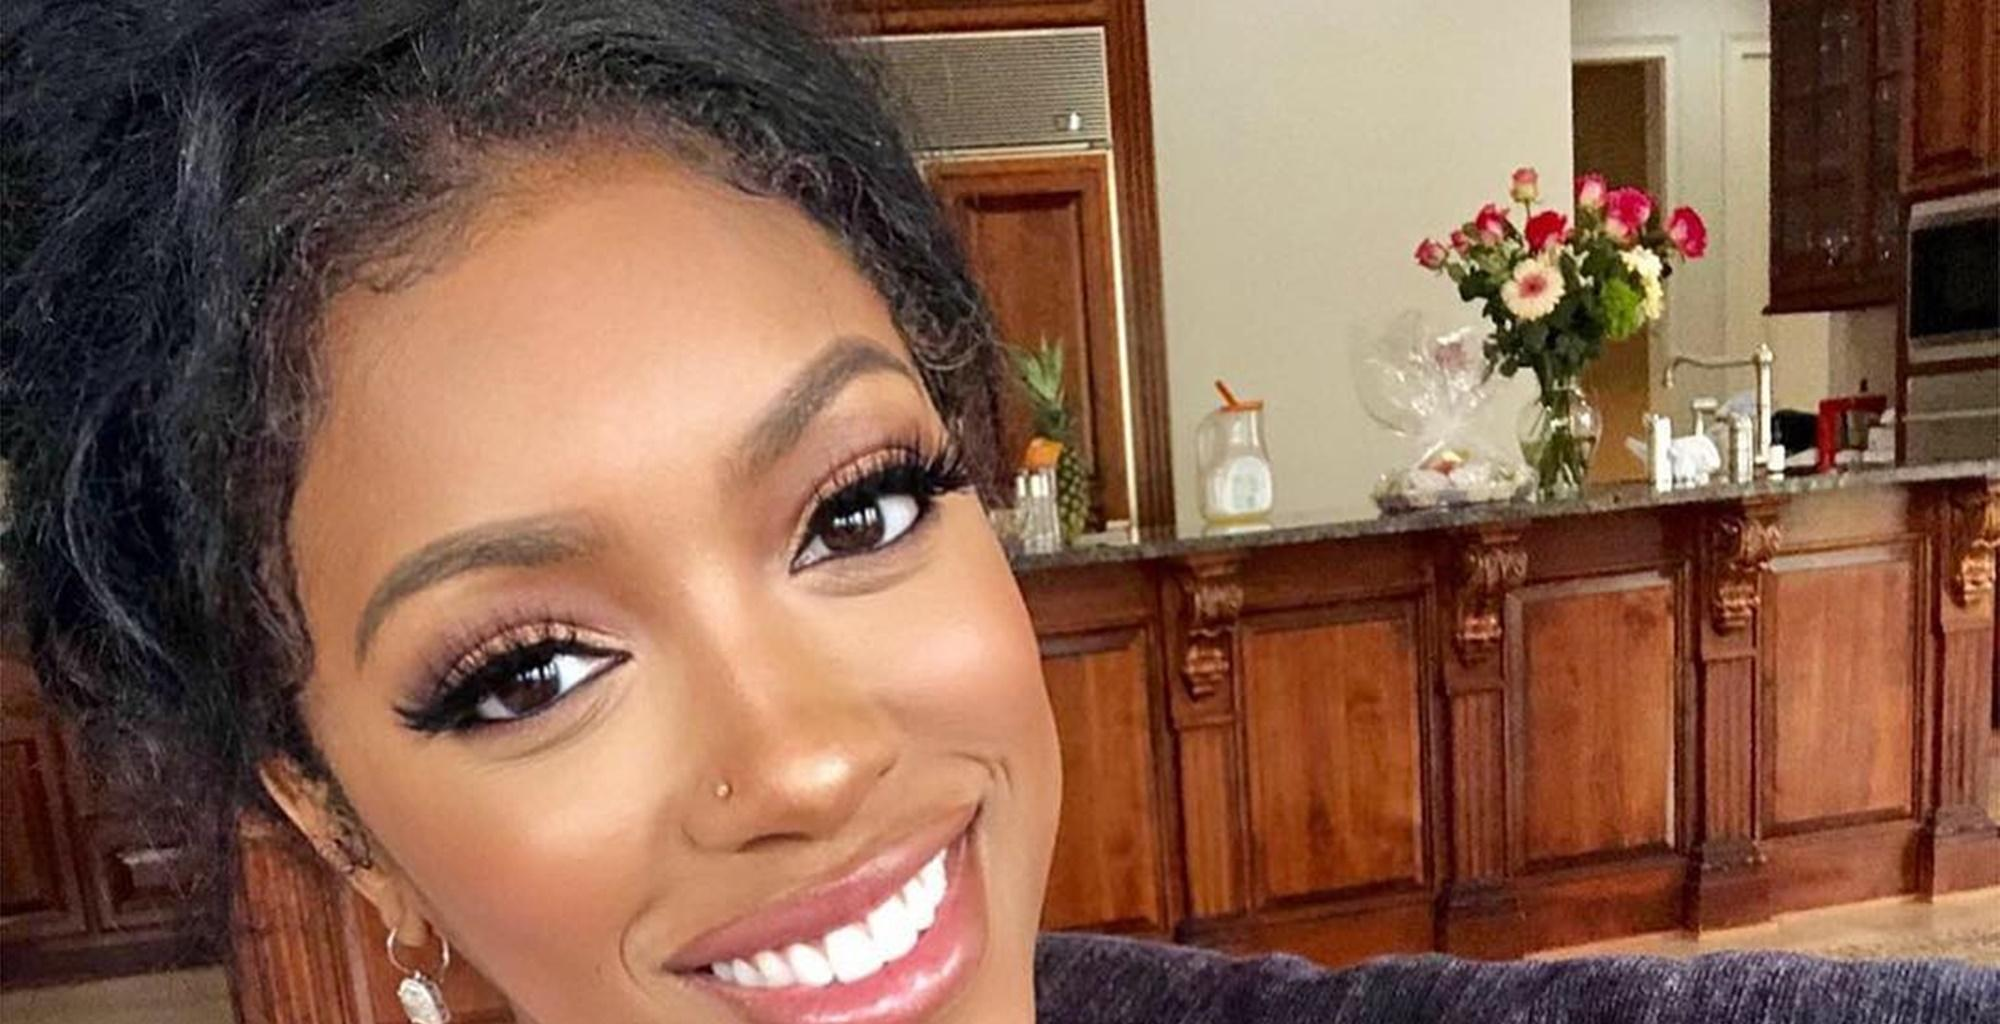 Porsha Williams Melts Fans' Hearts With Some Custom-Made Clothes For Baby Pilar Jhena - Watch Her Video - People Are Asking For The Baby's Face Reveal